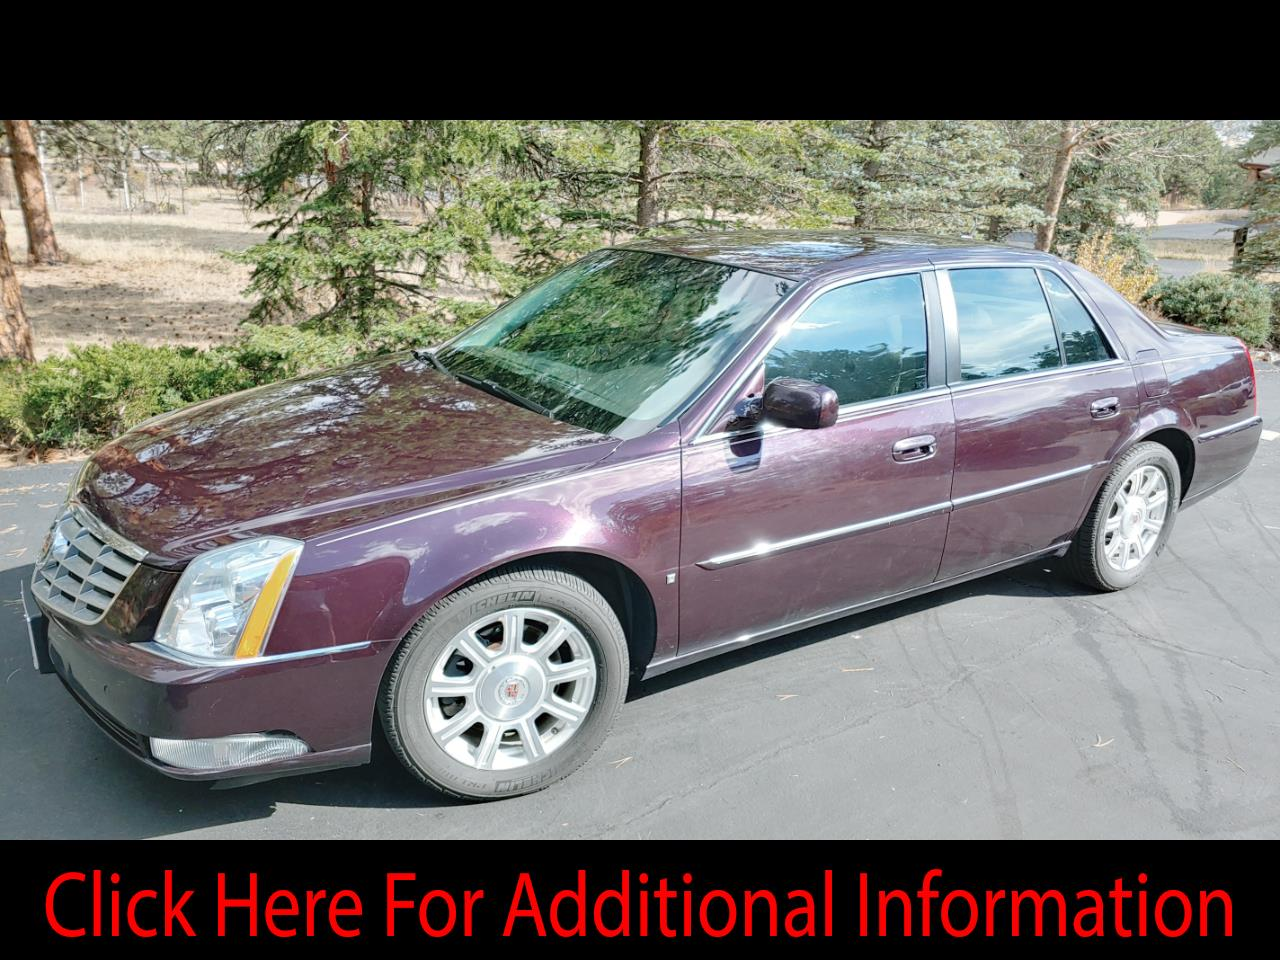 Cadillac DTS 4dr Sdn Luxury I 2008